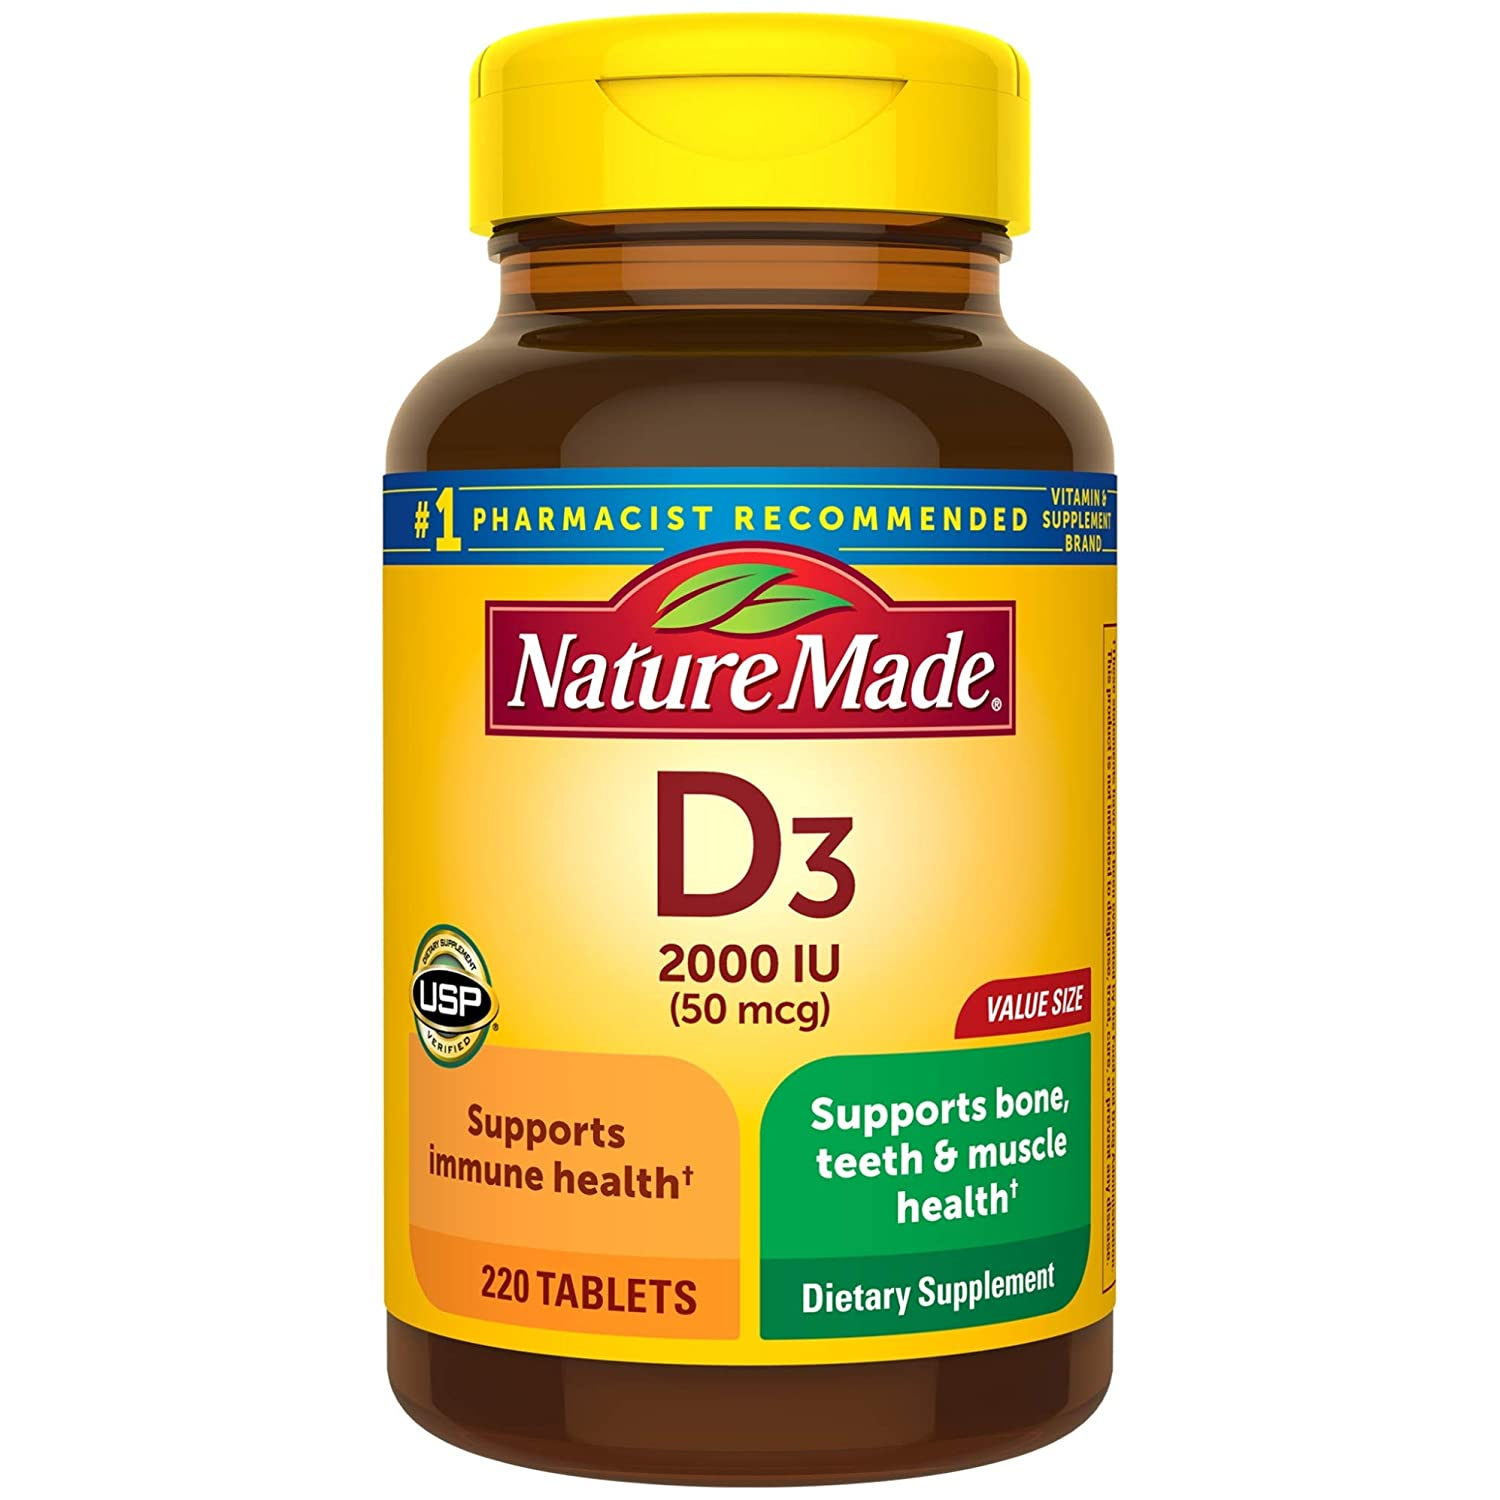 Nature Made Vitamin D3 2000 IU Tablets, 220 Ct